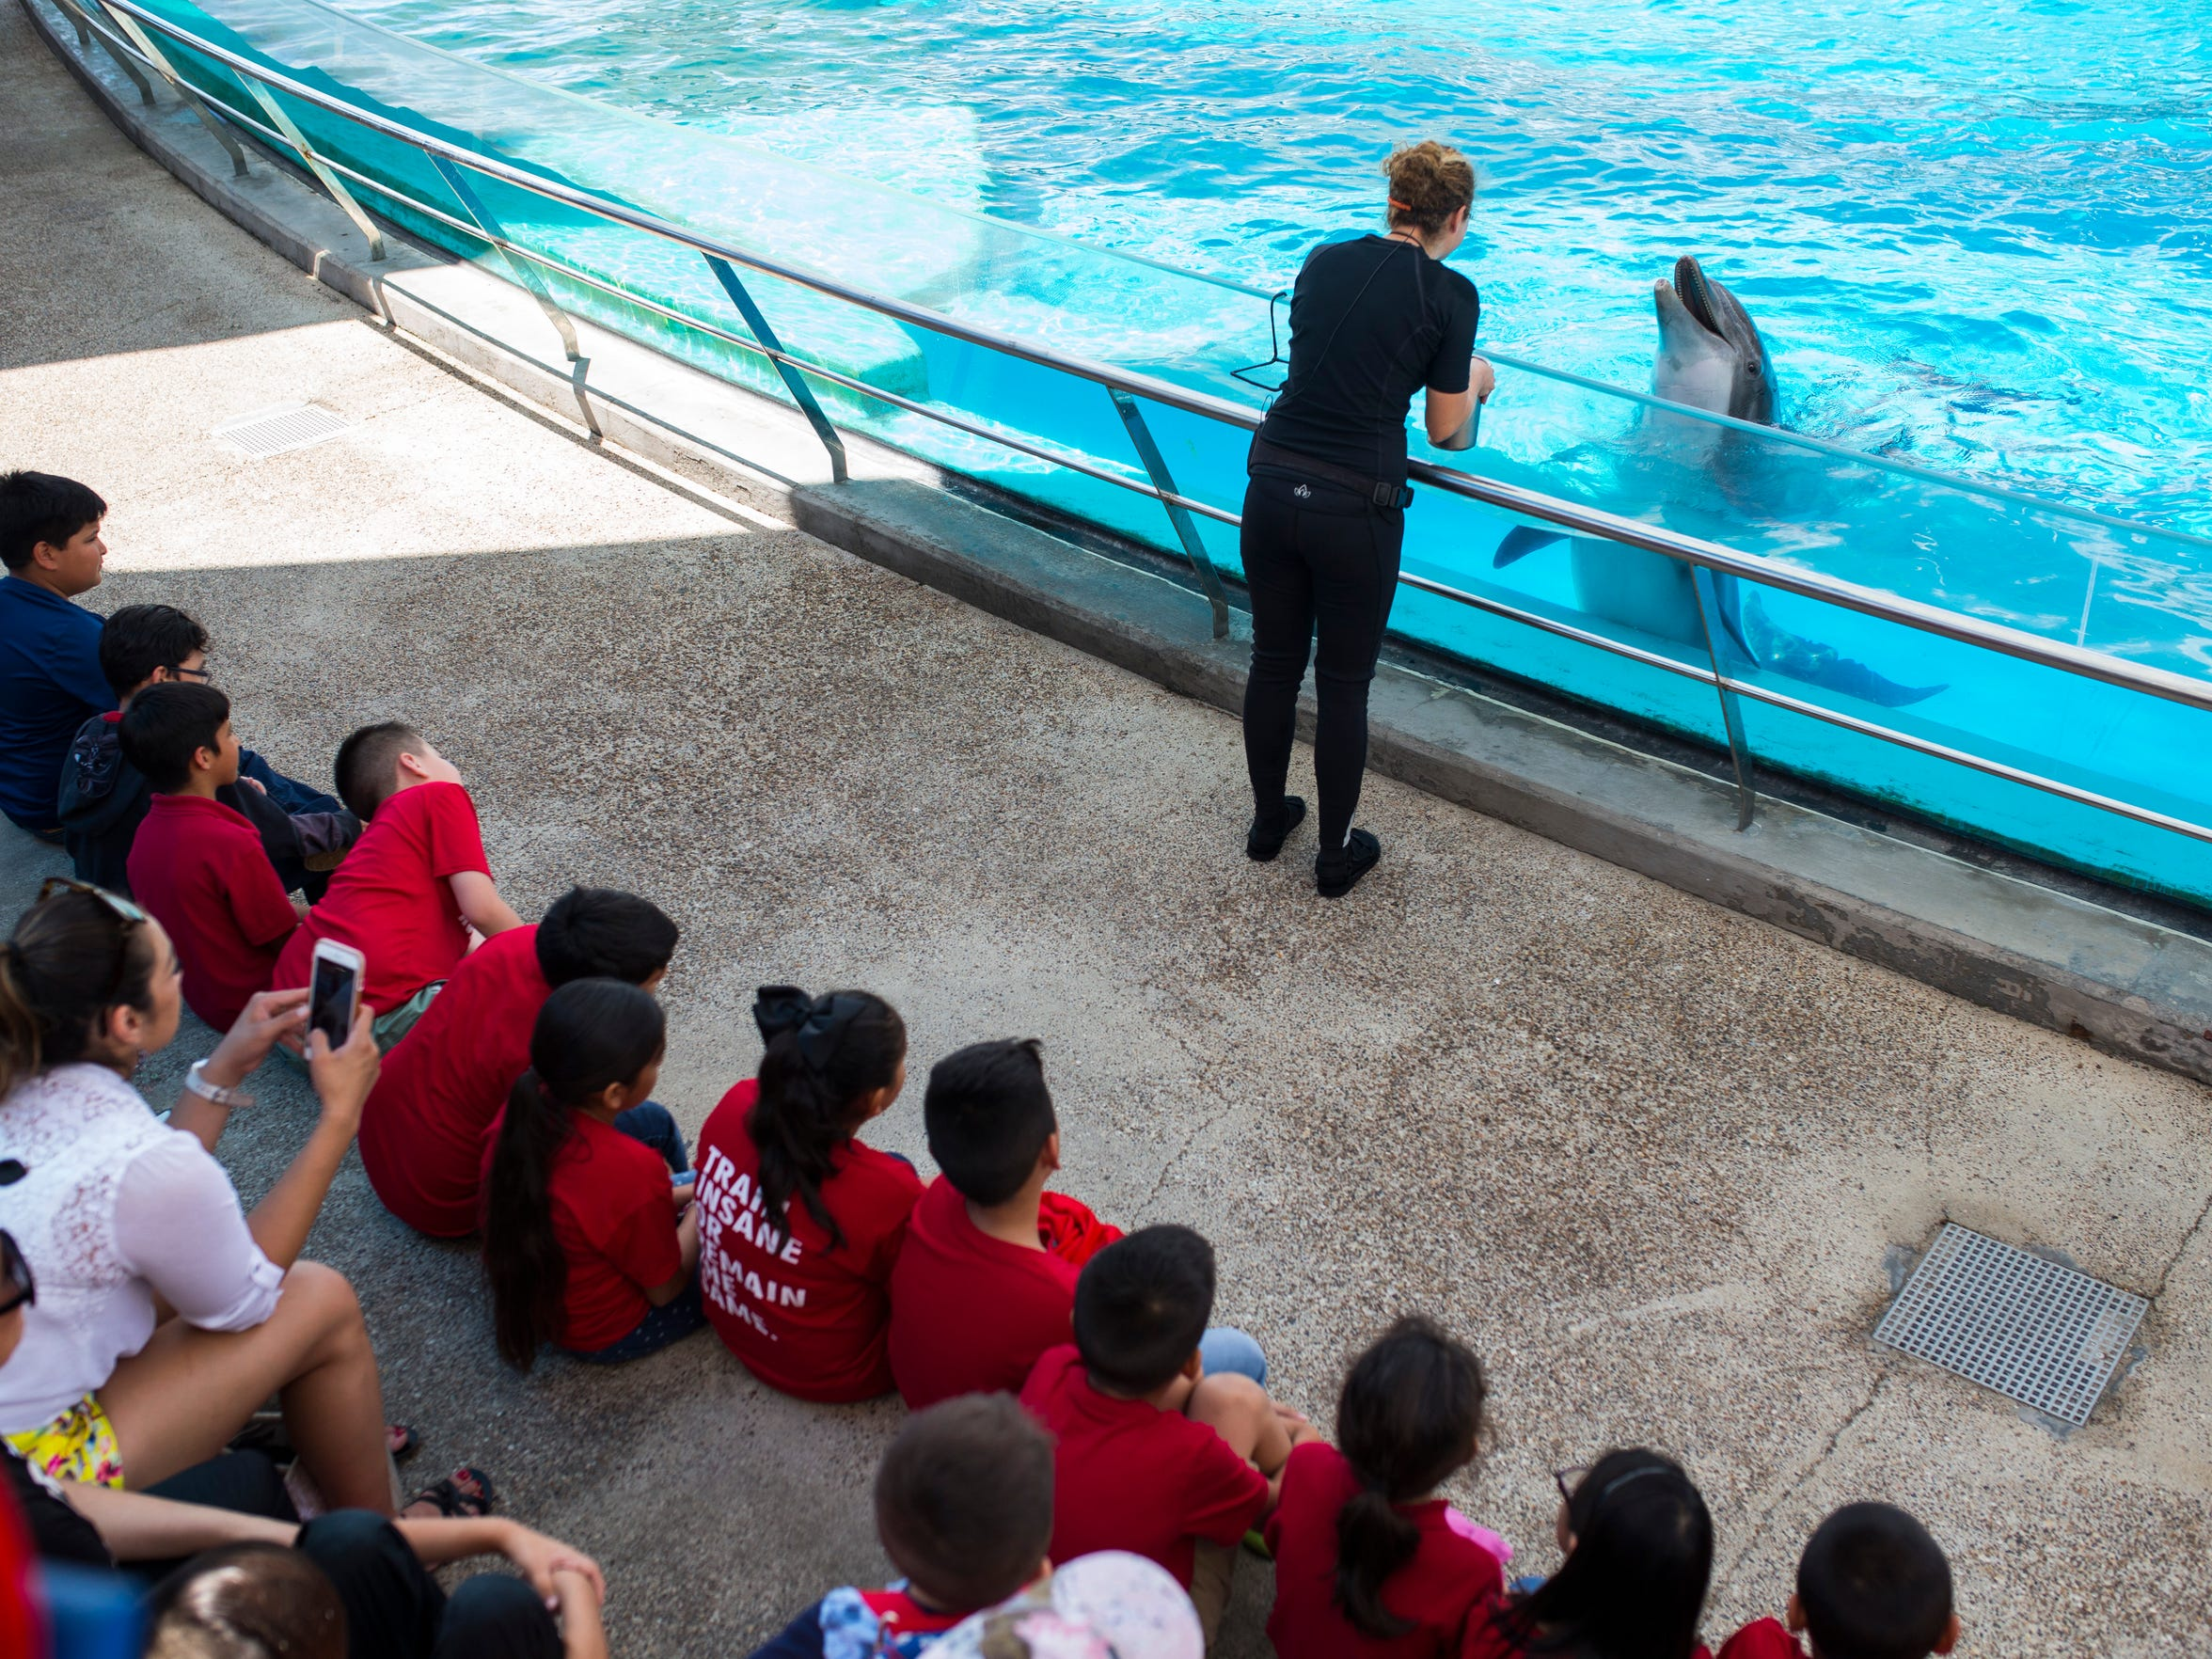 Kids watch as  trainer Merritt Grusecki gives instructions to one of the dolphins during their show on Thursday, May 10, 2018 at Texas State Aquarium.